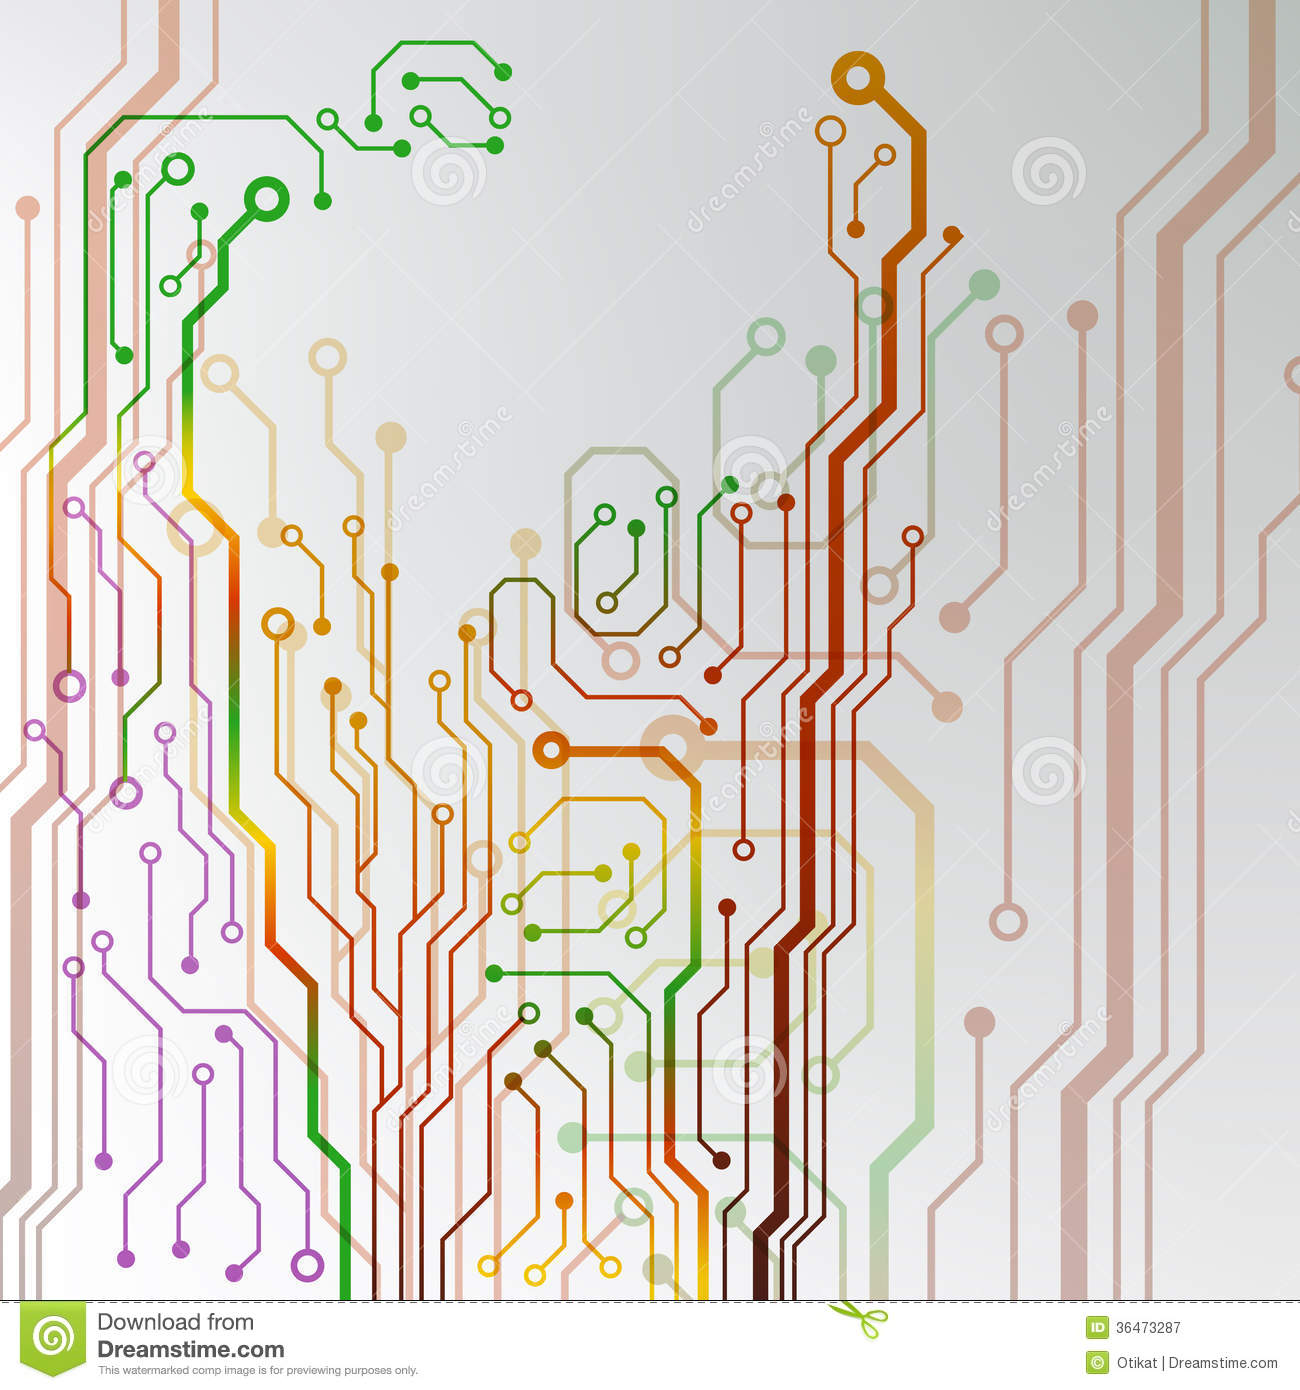 how to make a circuit board at home